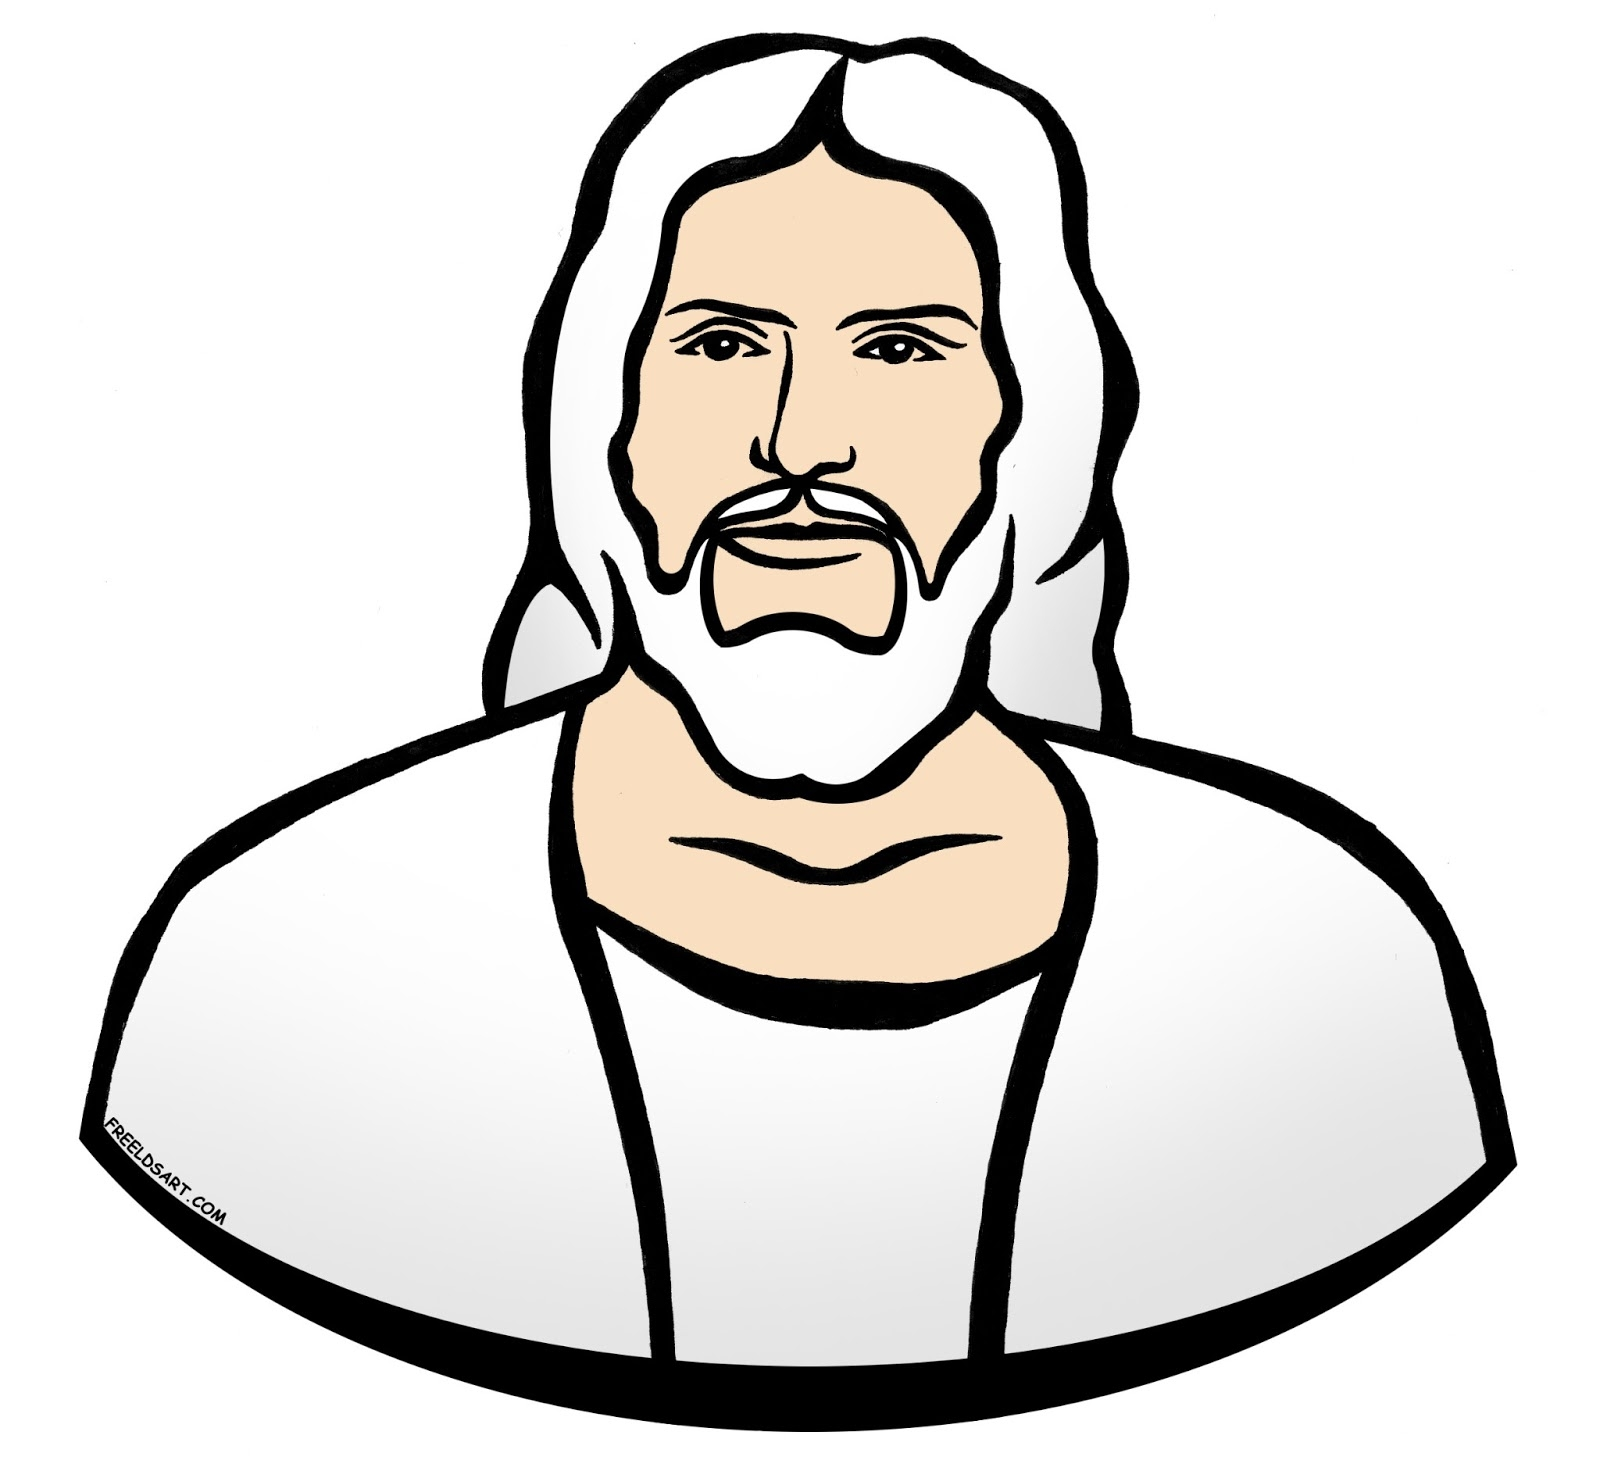 Gods clipart black and white Father father and white black